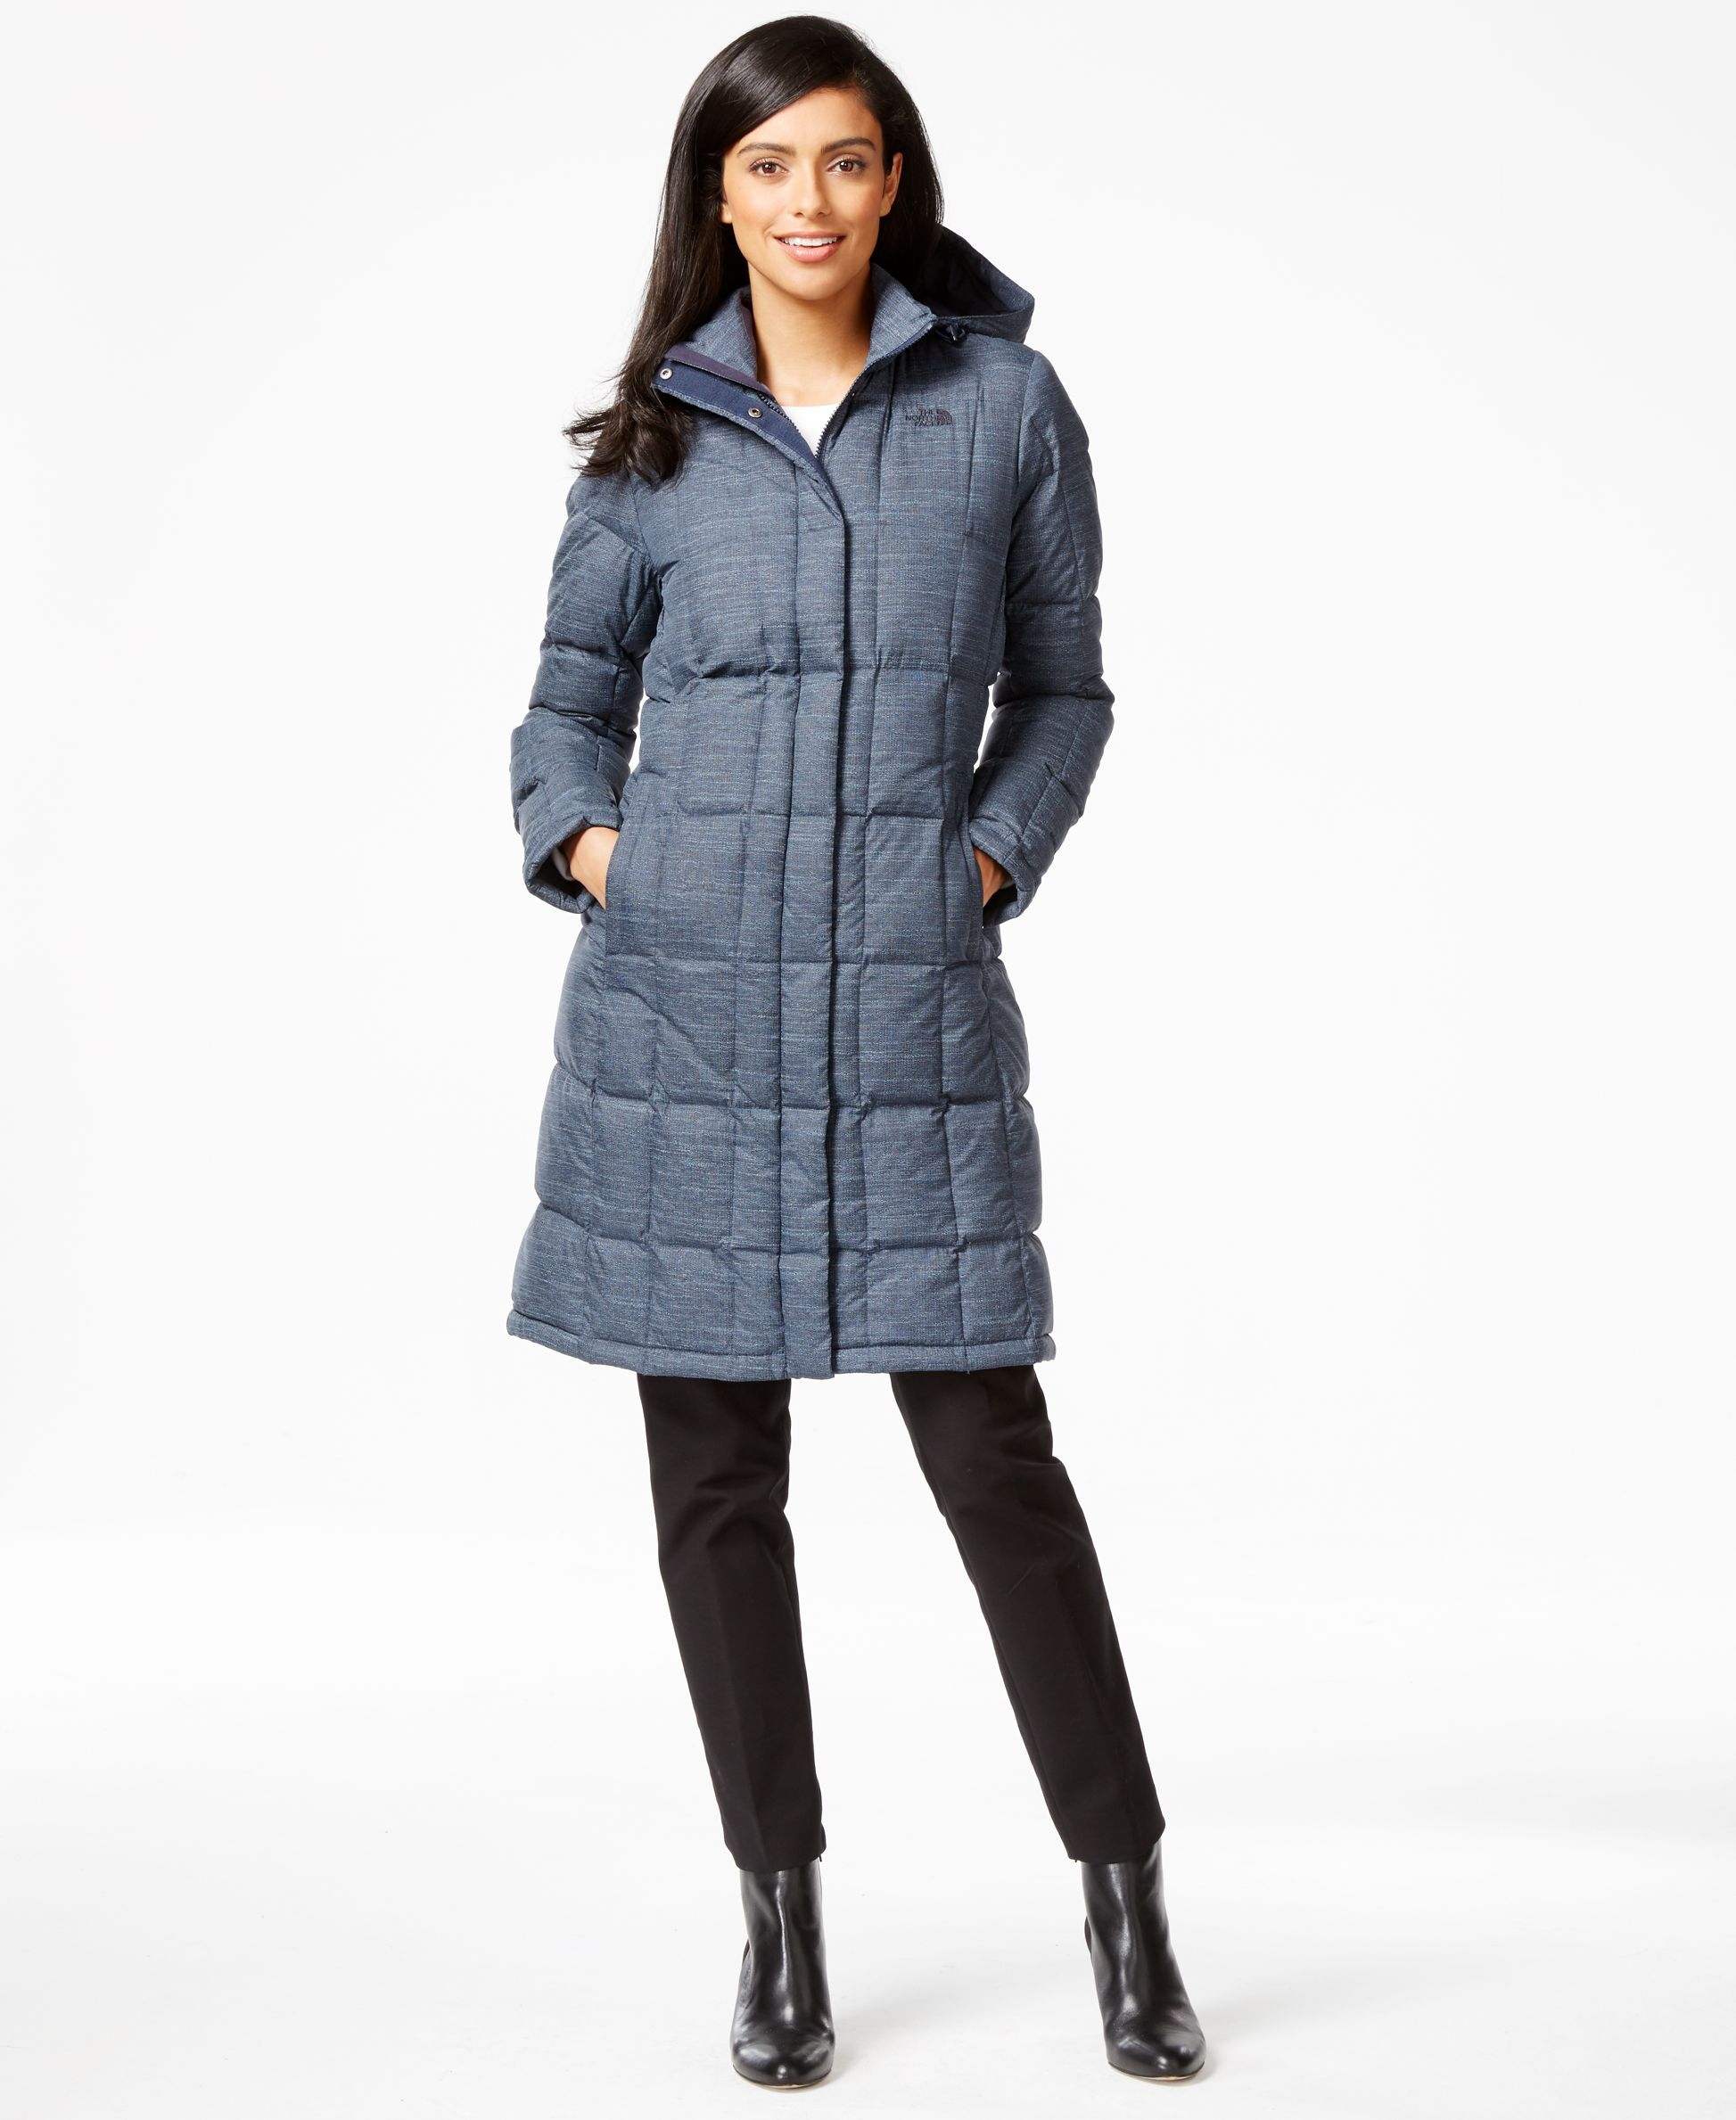 4665b1307a The North Face Miss Metro Down-Filled Parka - Jackets   Blazers - Women -  Macy s